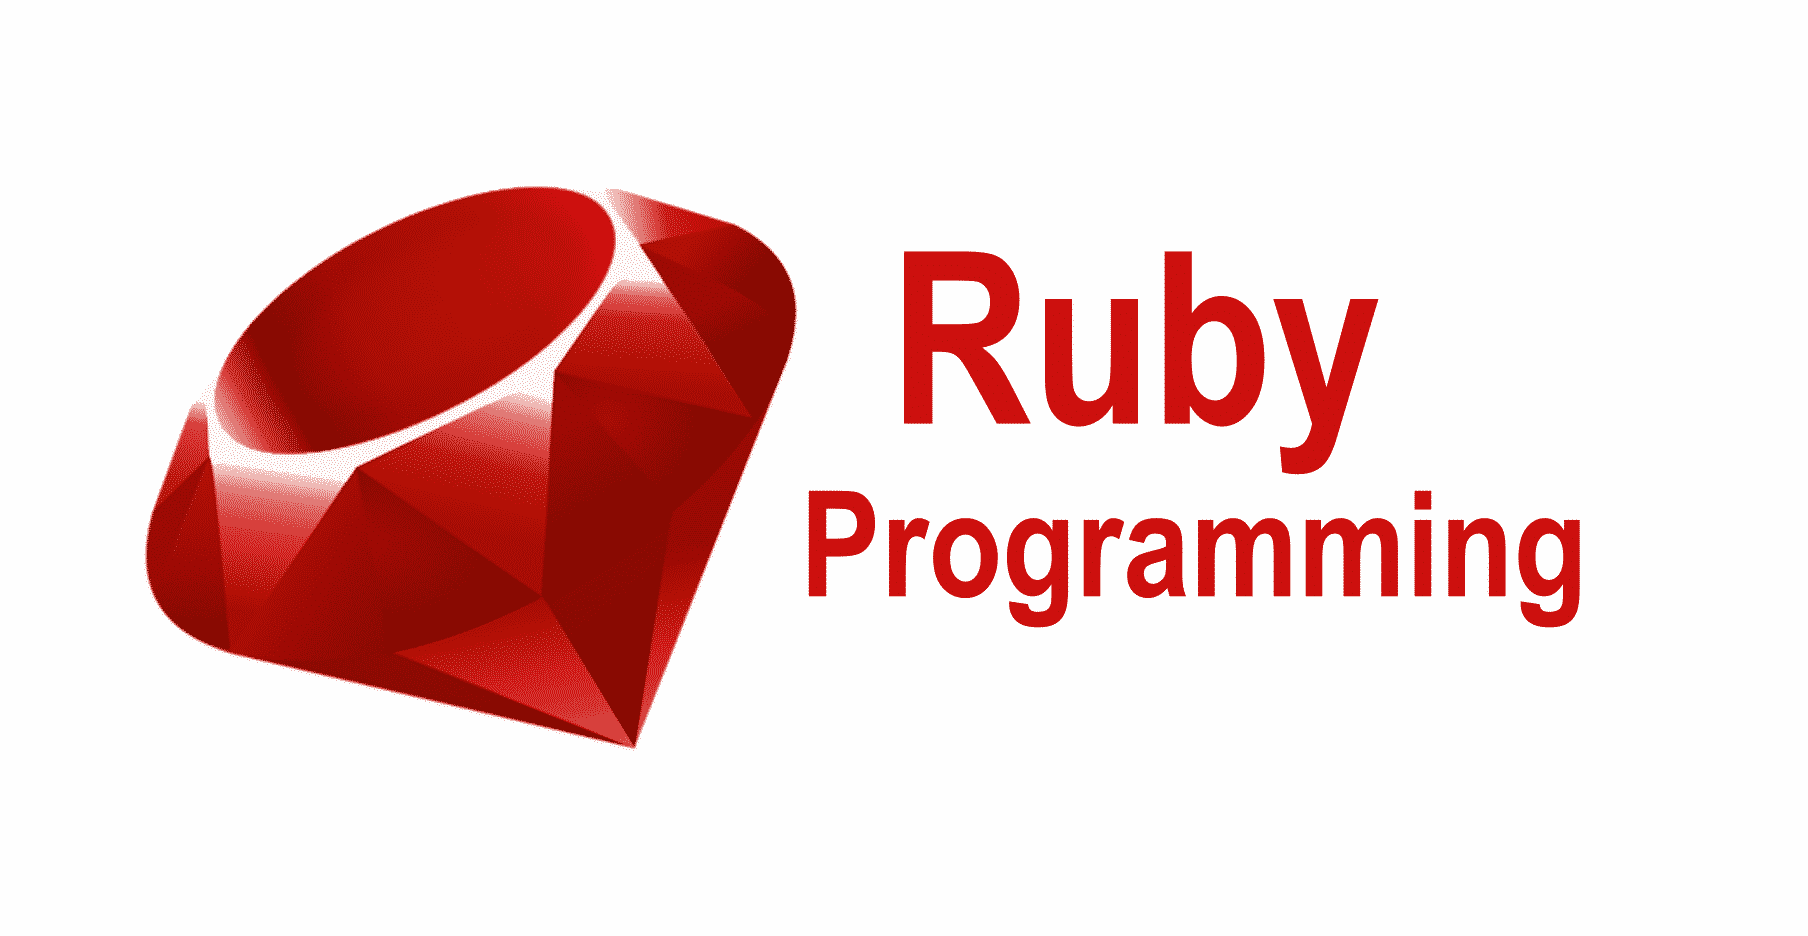 one of the most sort out programming language